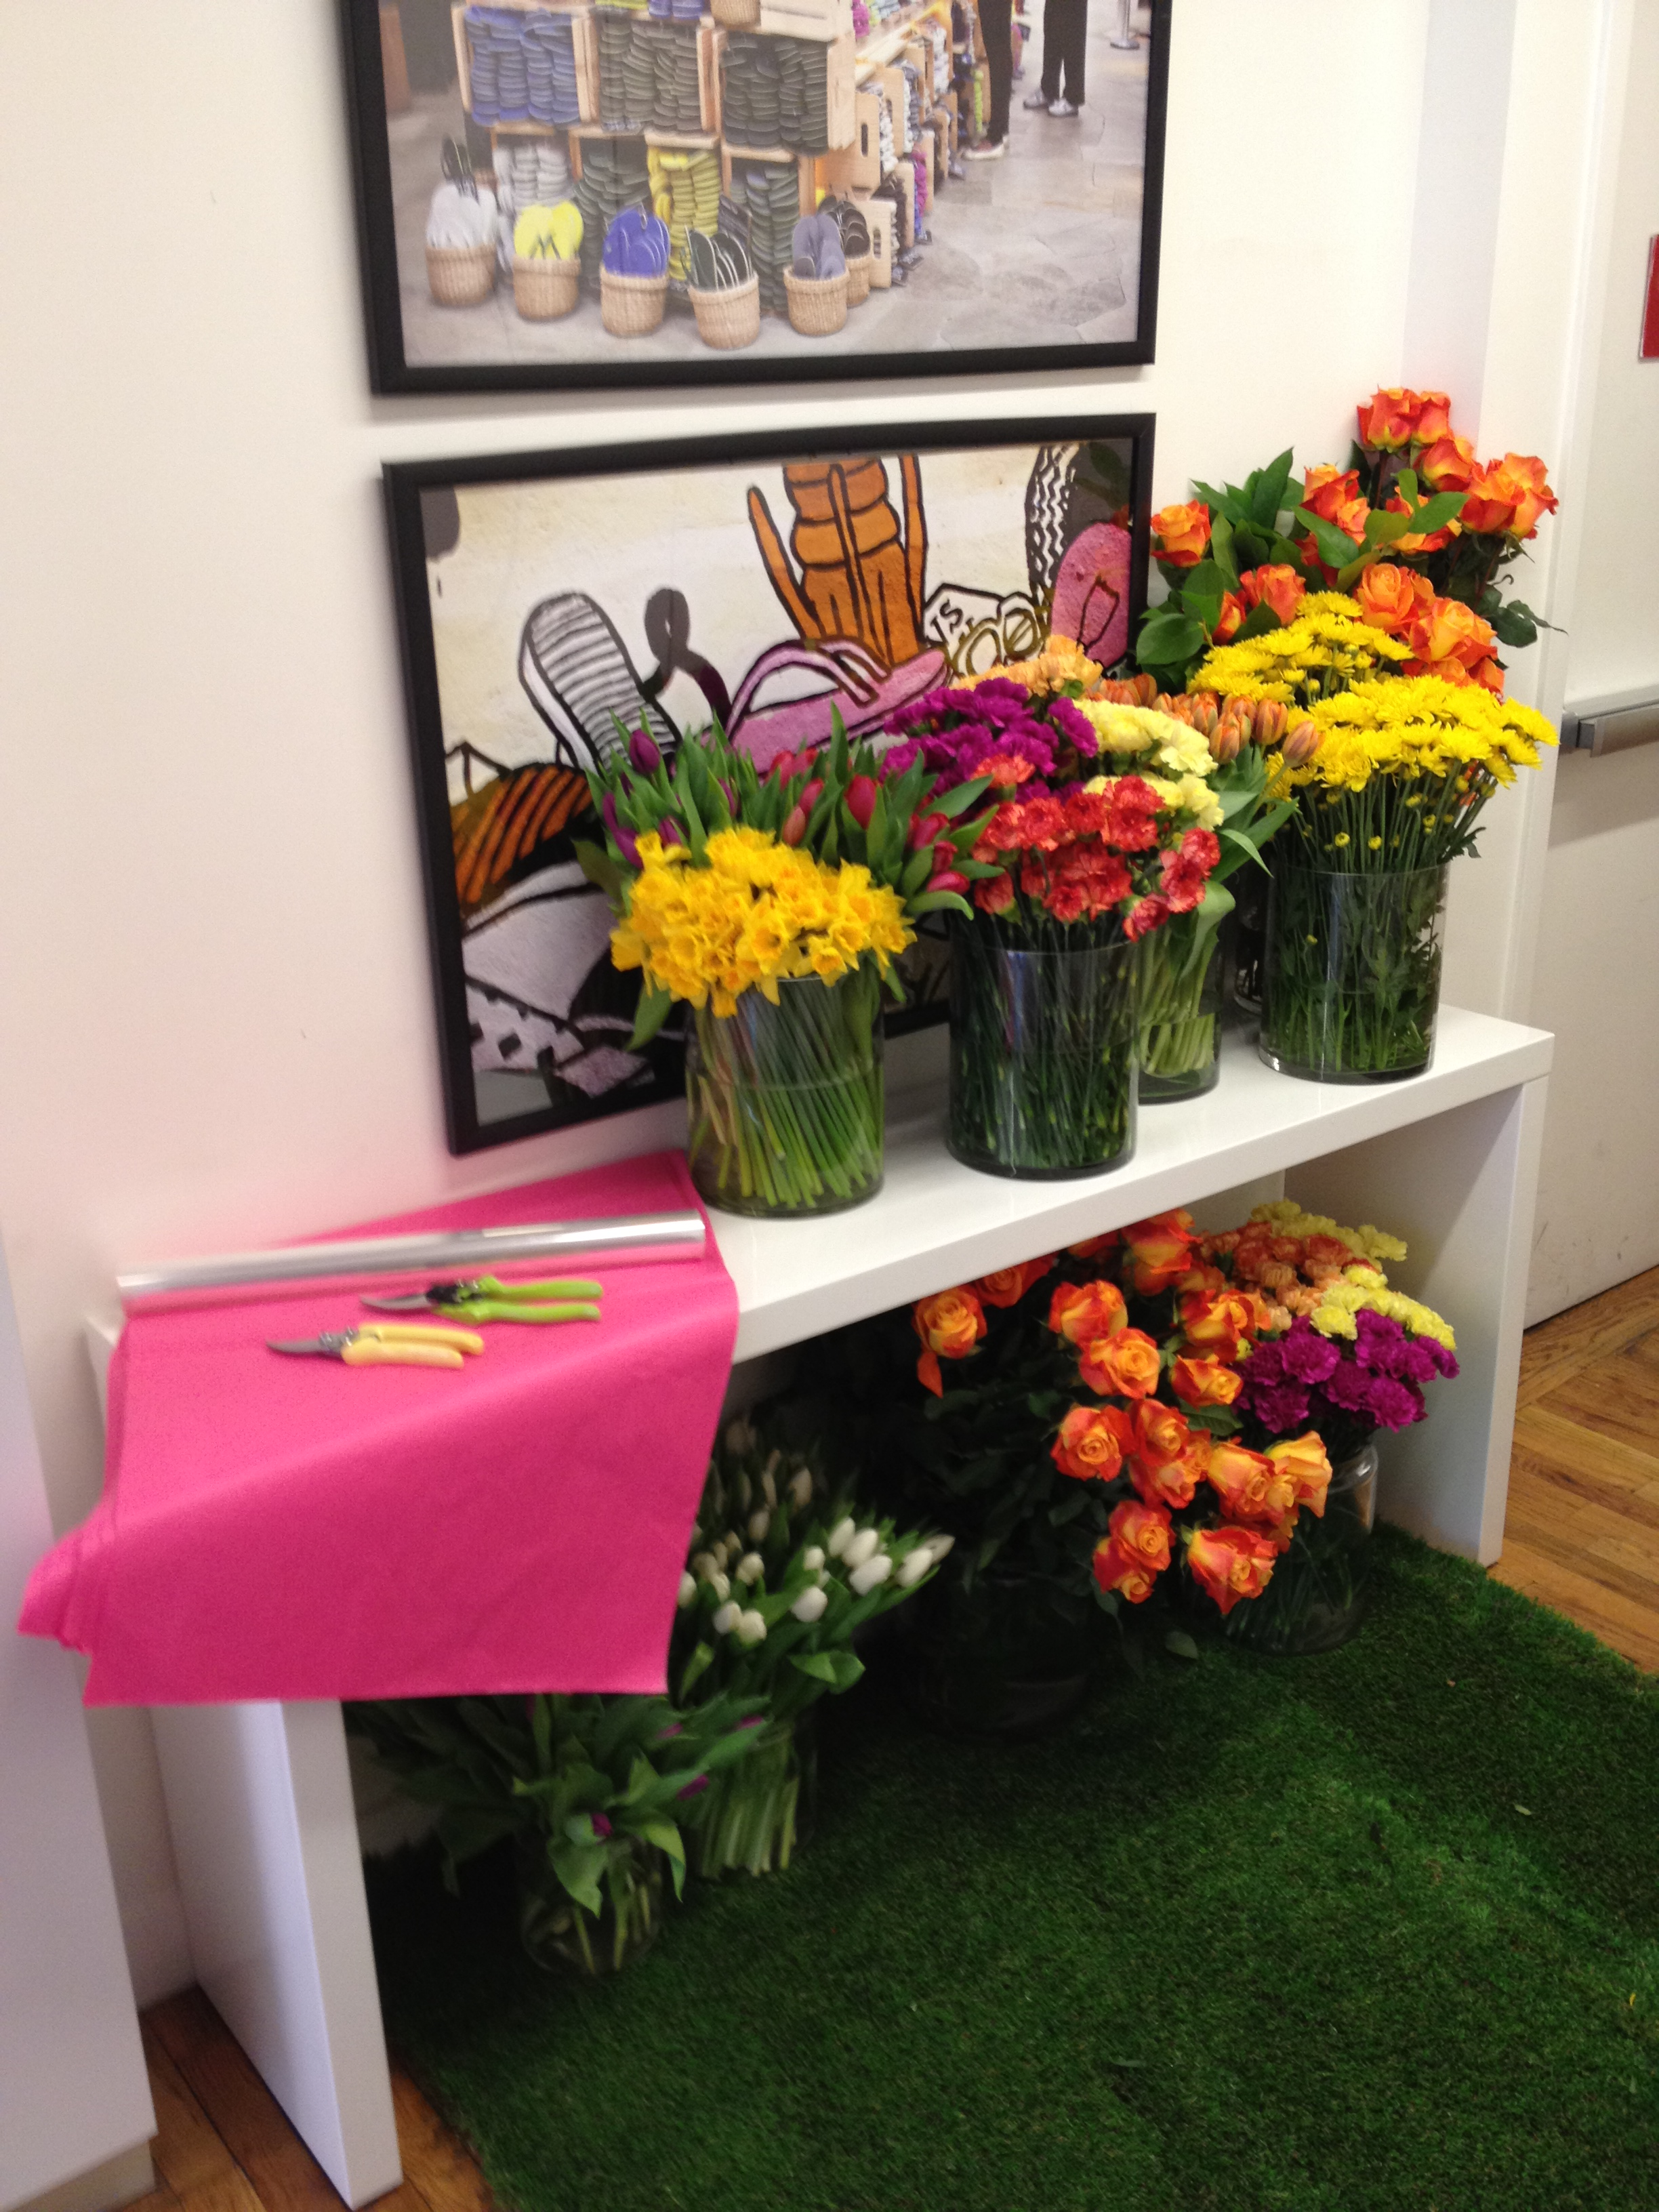 Havaiana's Editor Event - Do It Yourself Bouquets